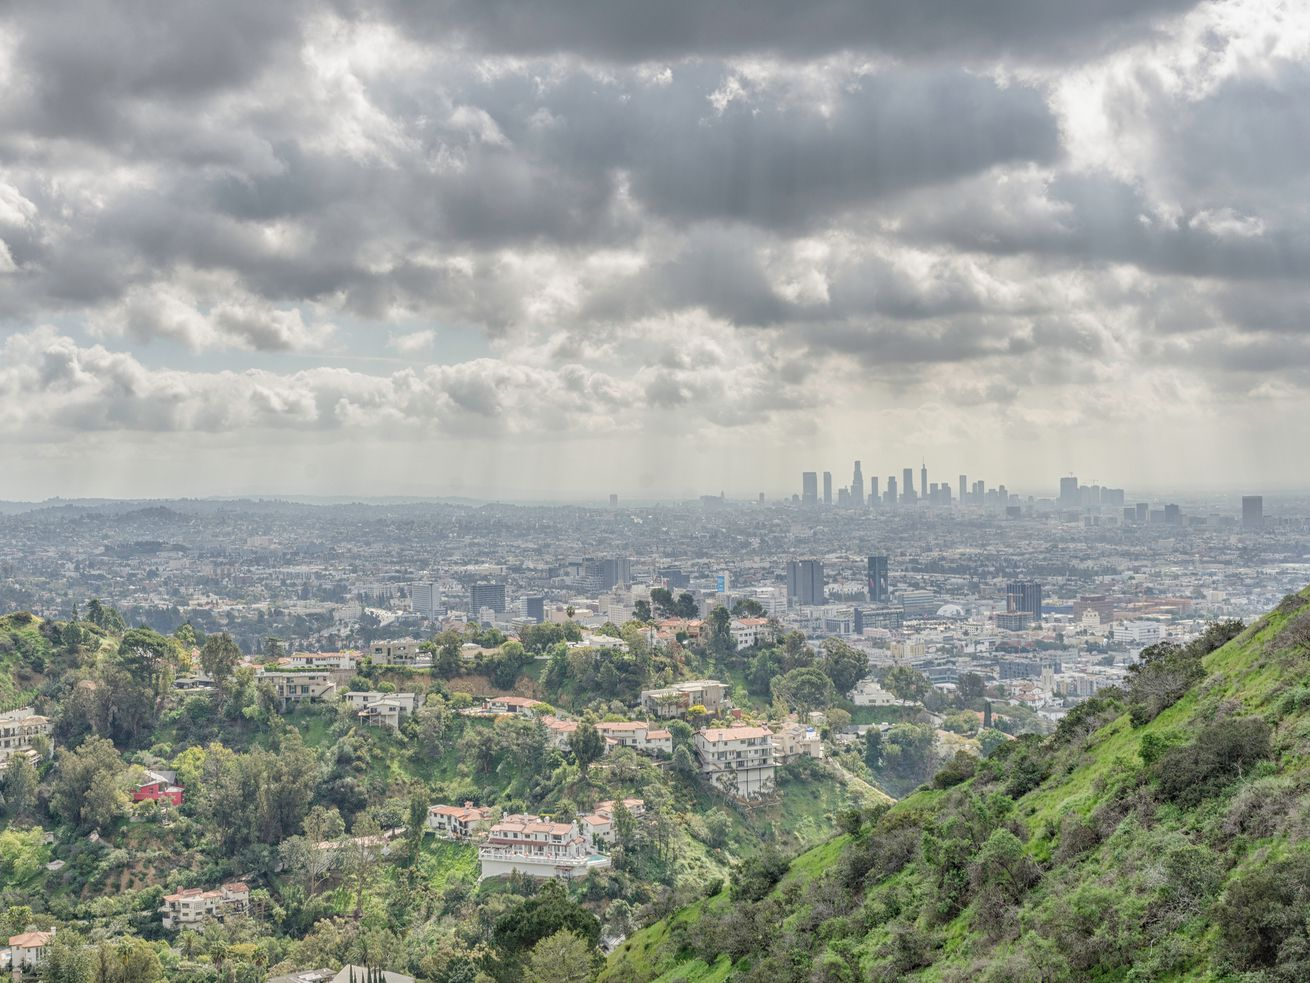 Temperatures in Downtown LA aren't expected to rise above 70 this weekend.